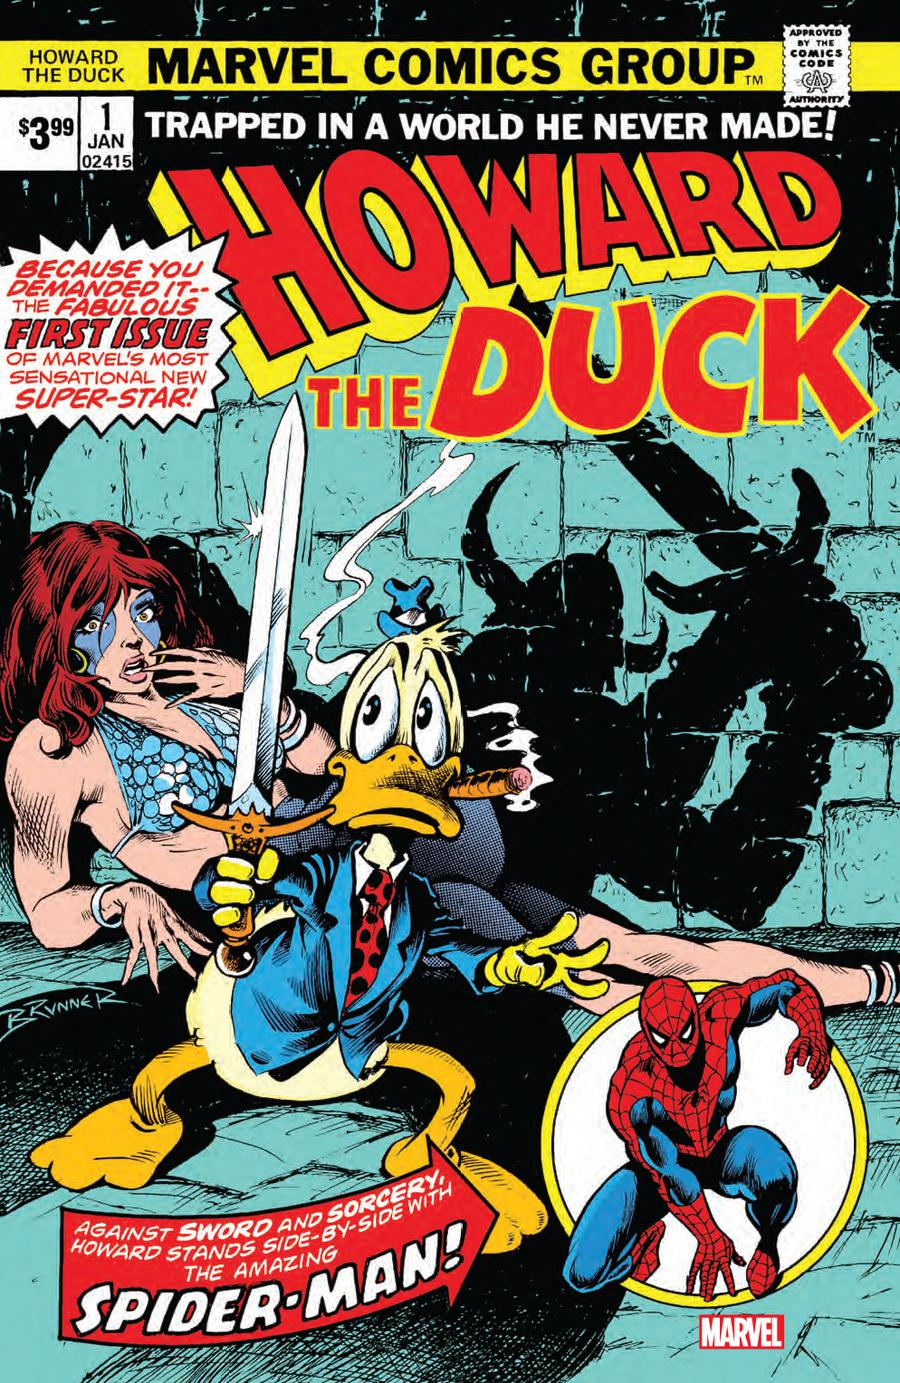 Howard The Duck Vol 1 #1 Cover B Facsimile Edition